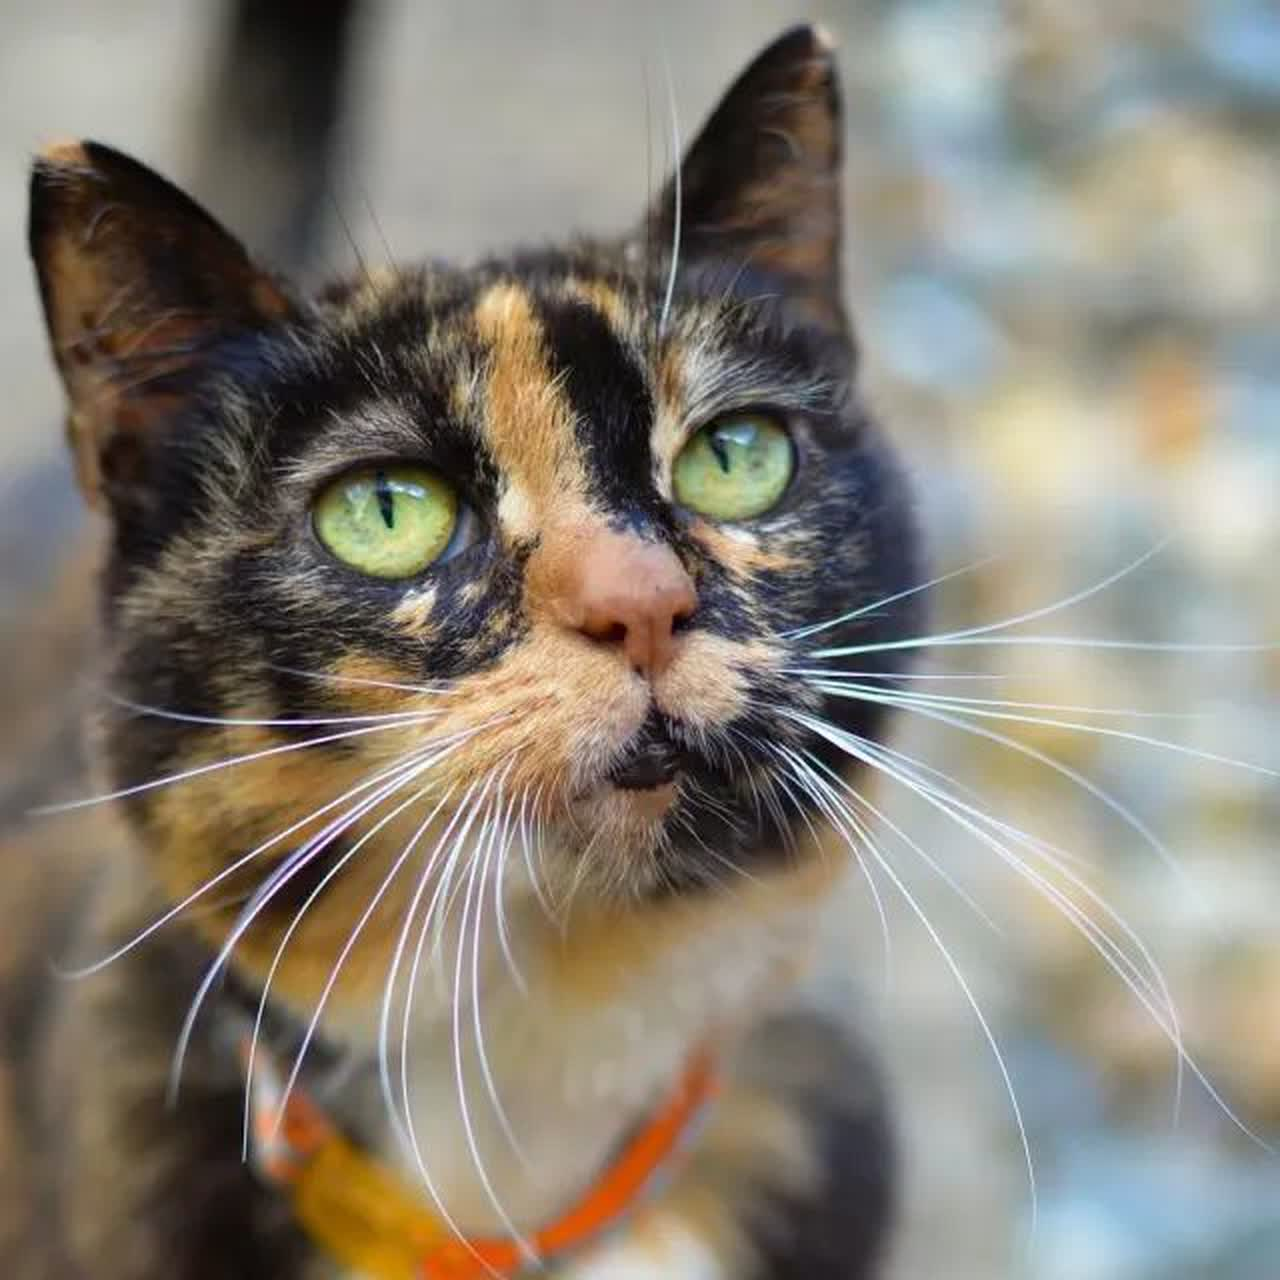 A tortoiseshell cat looking into the camera.